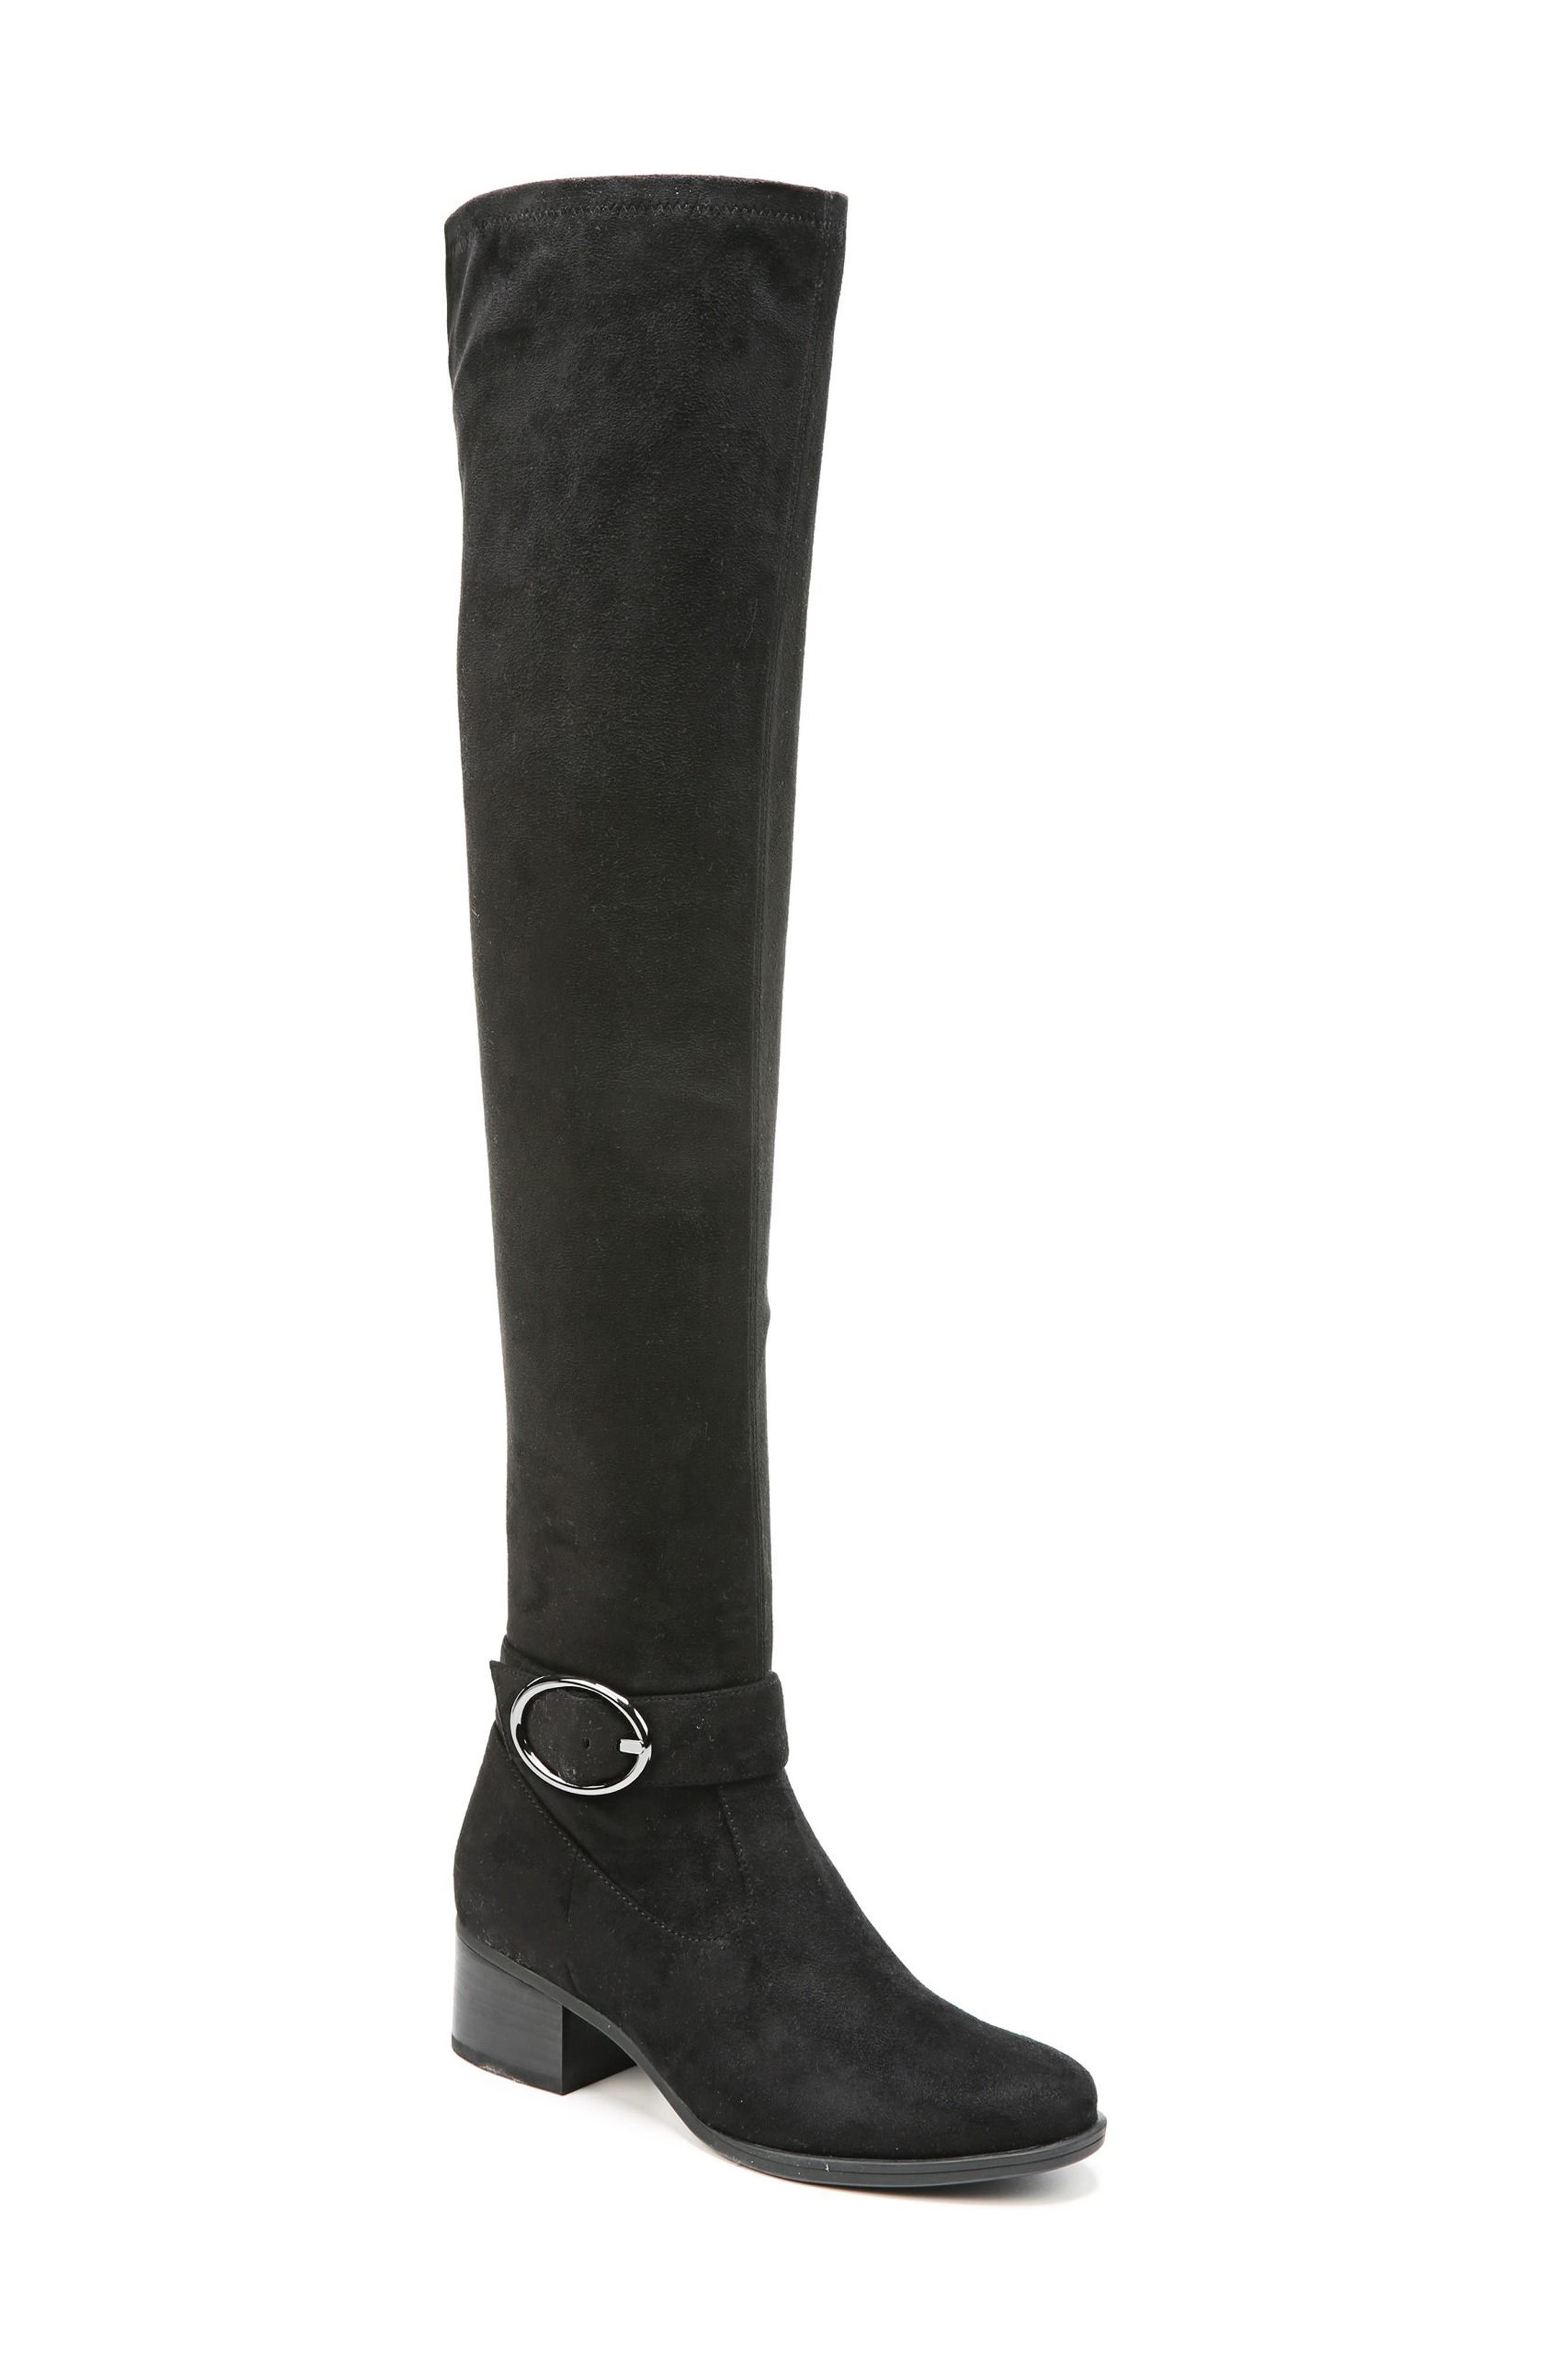 NATURALIZER Dalyn Over the Knee Boot, Main, color, 001